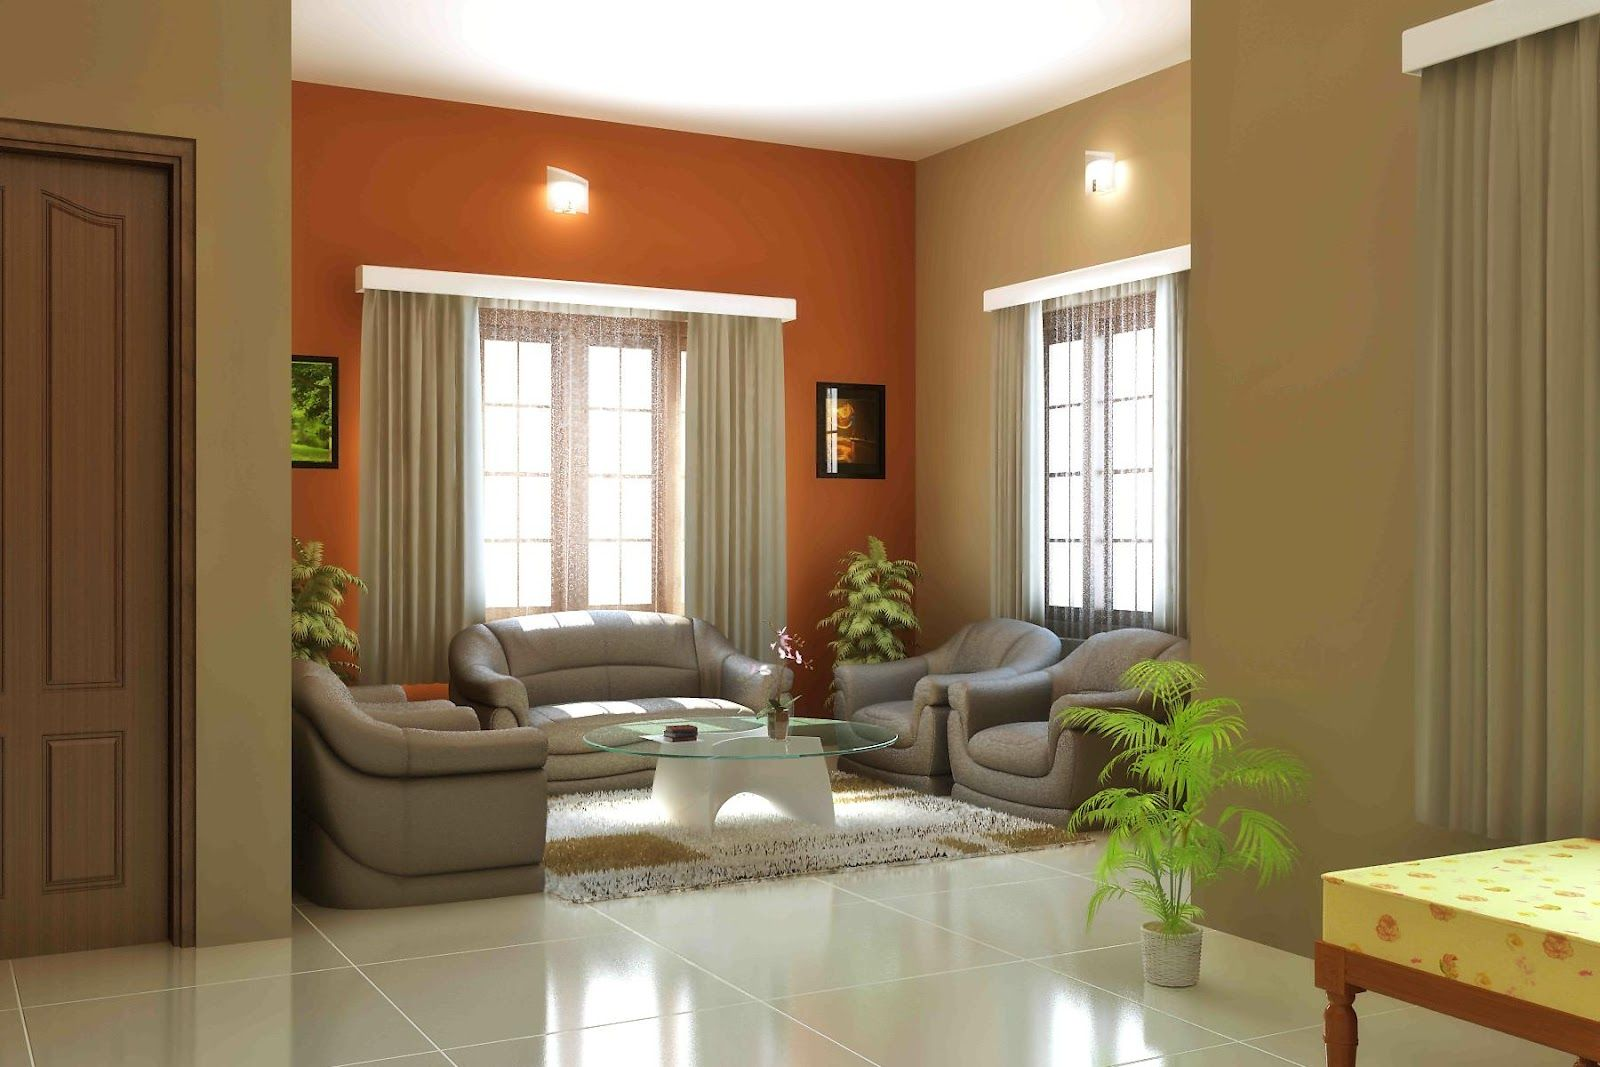 Interiordesign Painting Paints Decoration Decorations Tuesday Tuesdaymorning Tu Interior House Colors Small House Interior Design Interior Design Paint